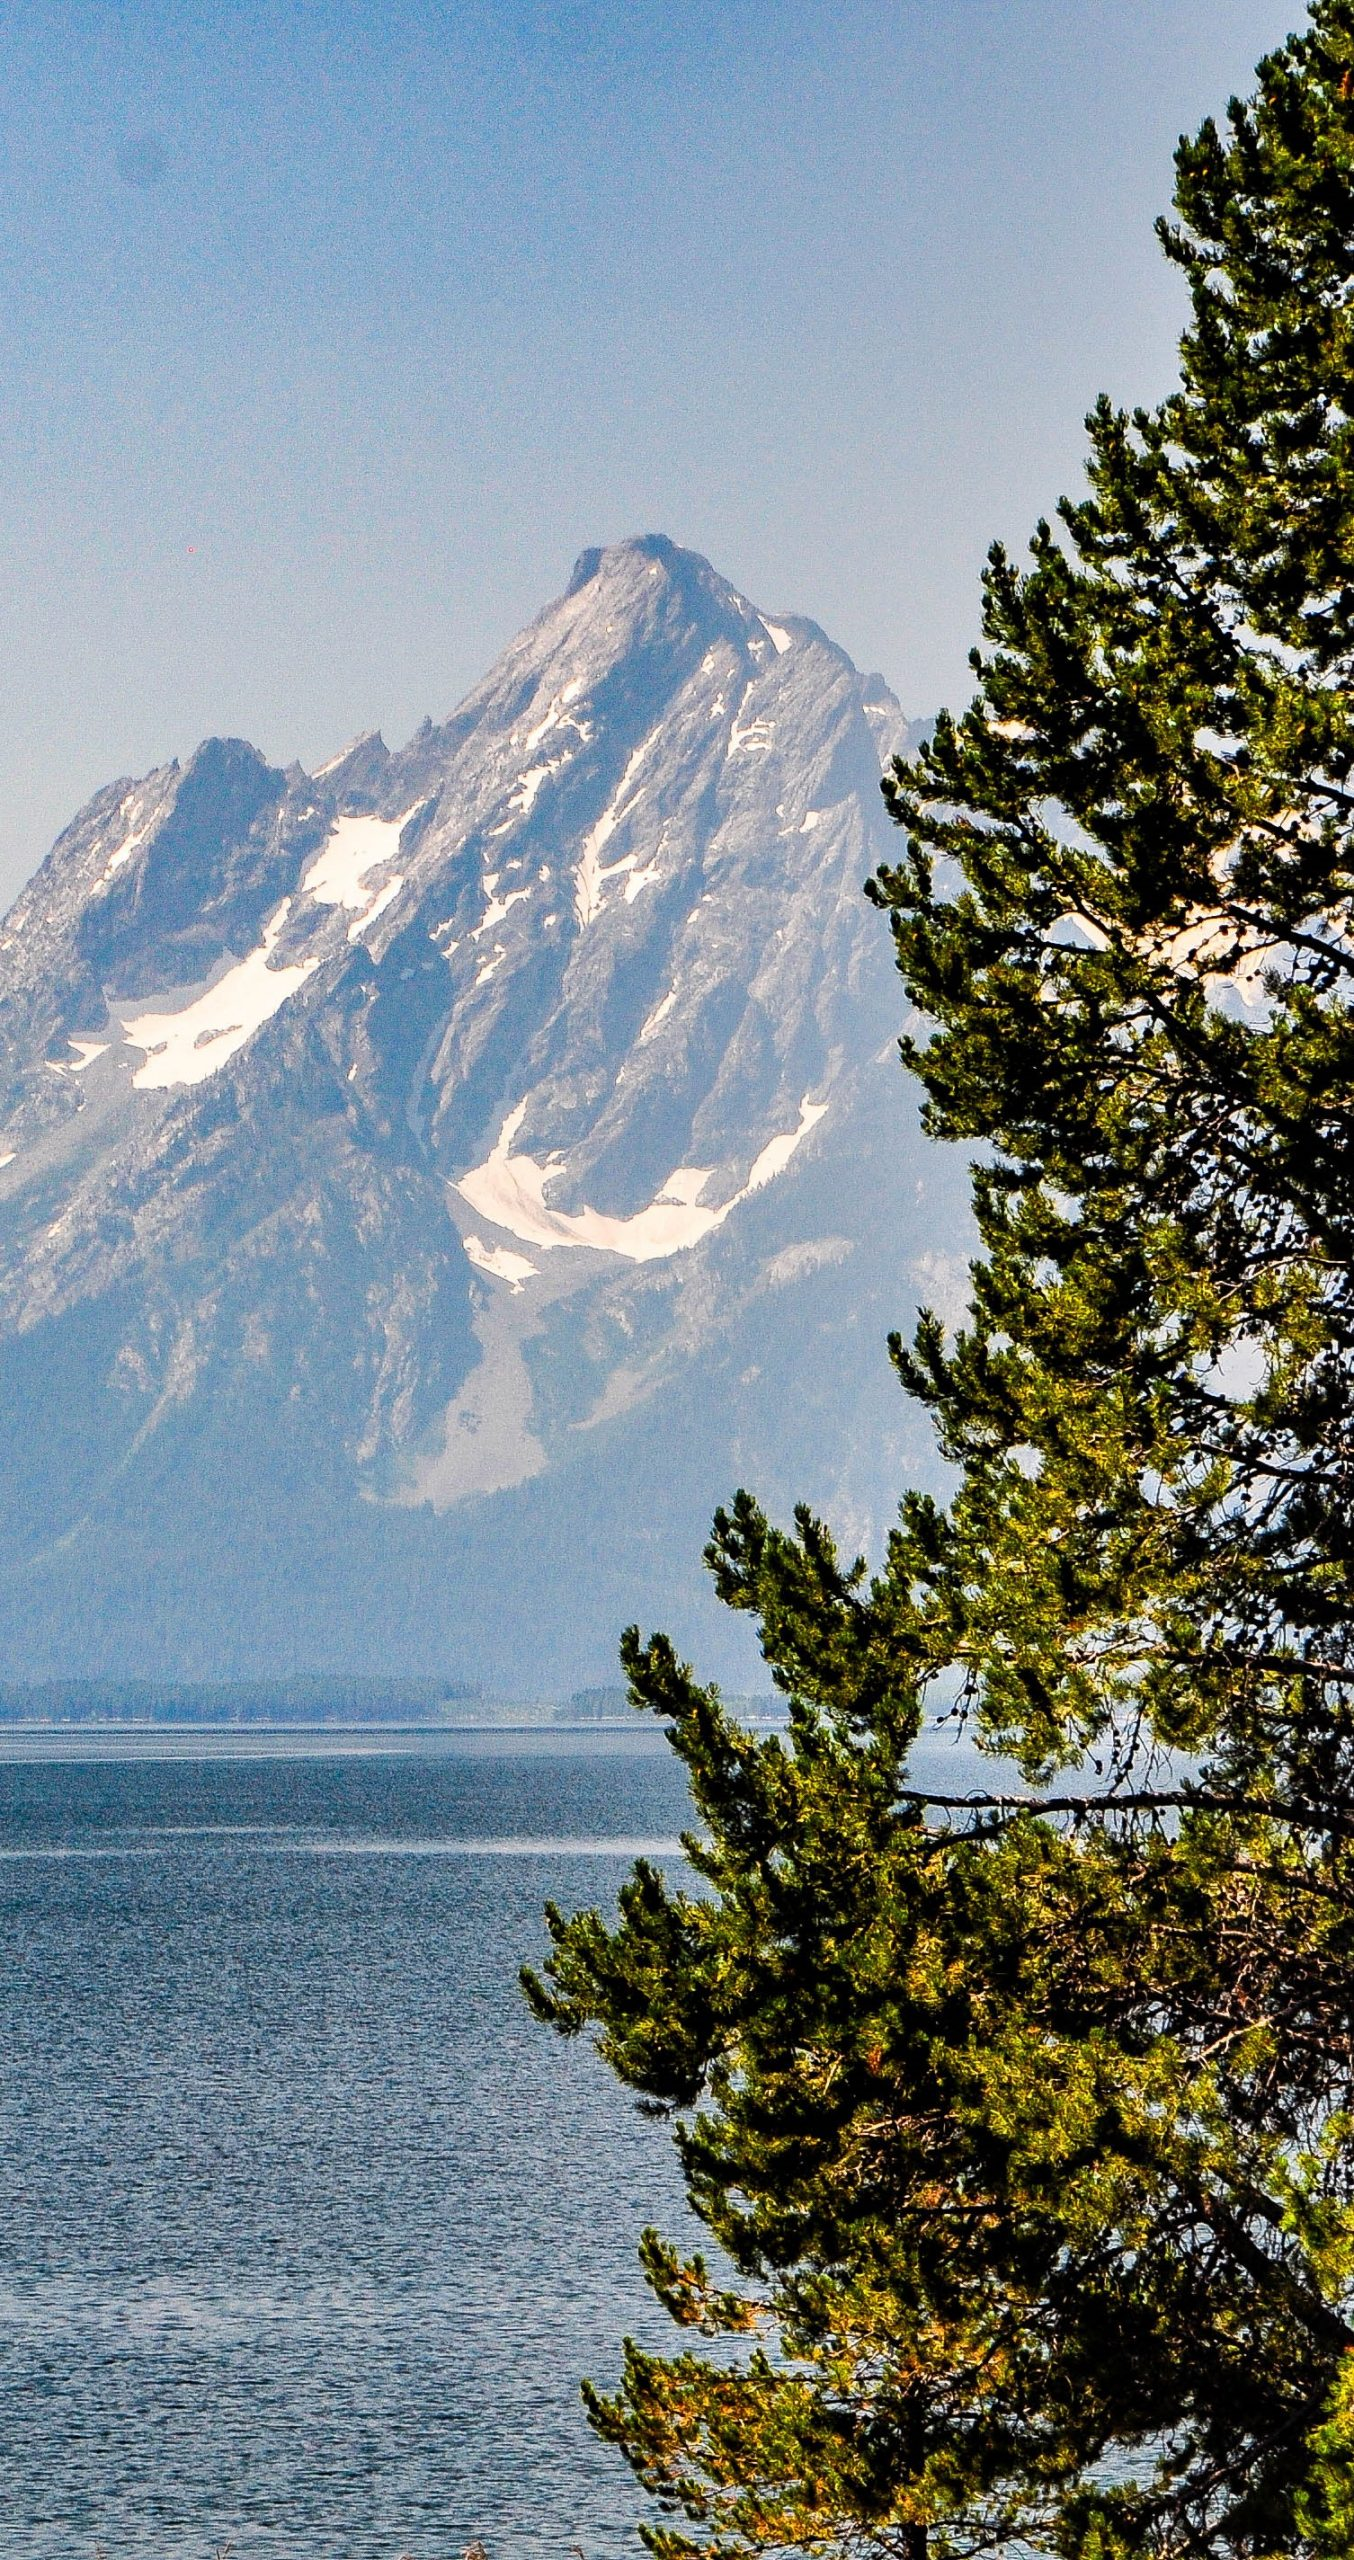 Tree in front of a view of Jackson Lake and the Grand